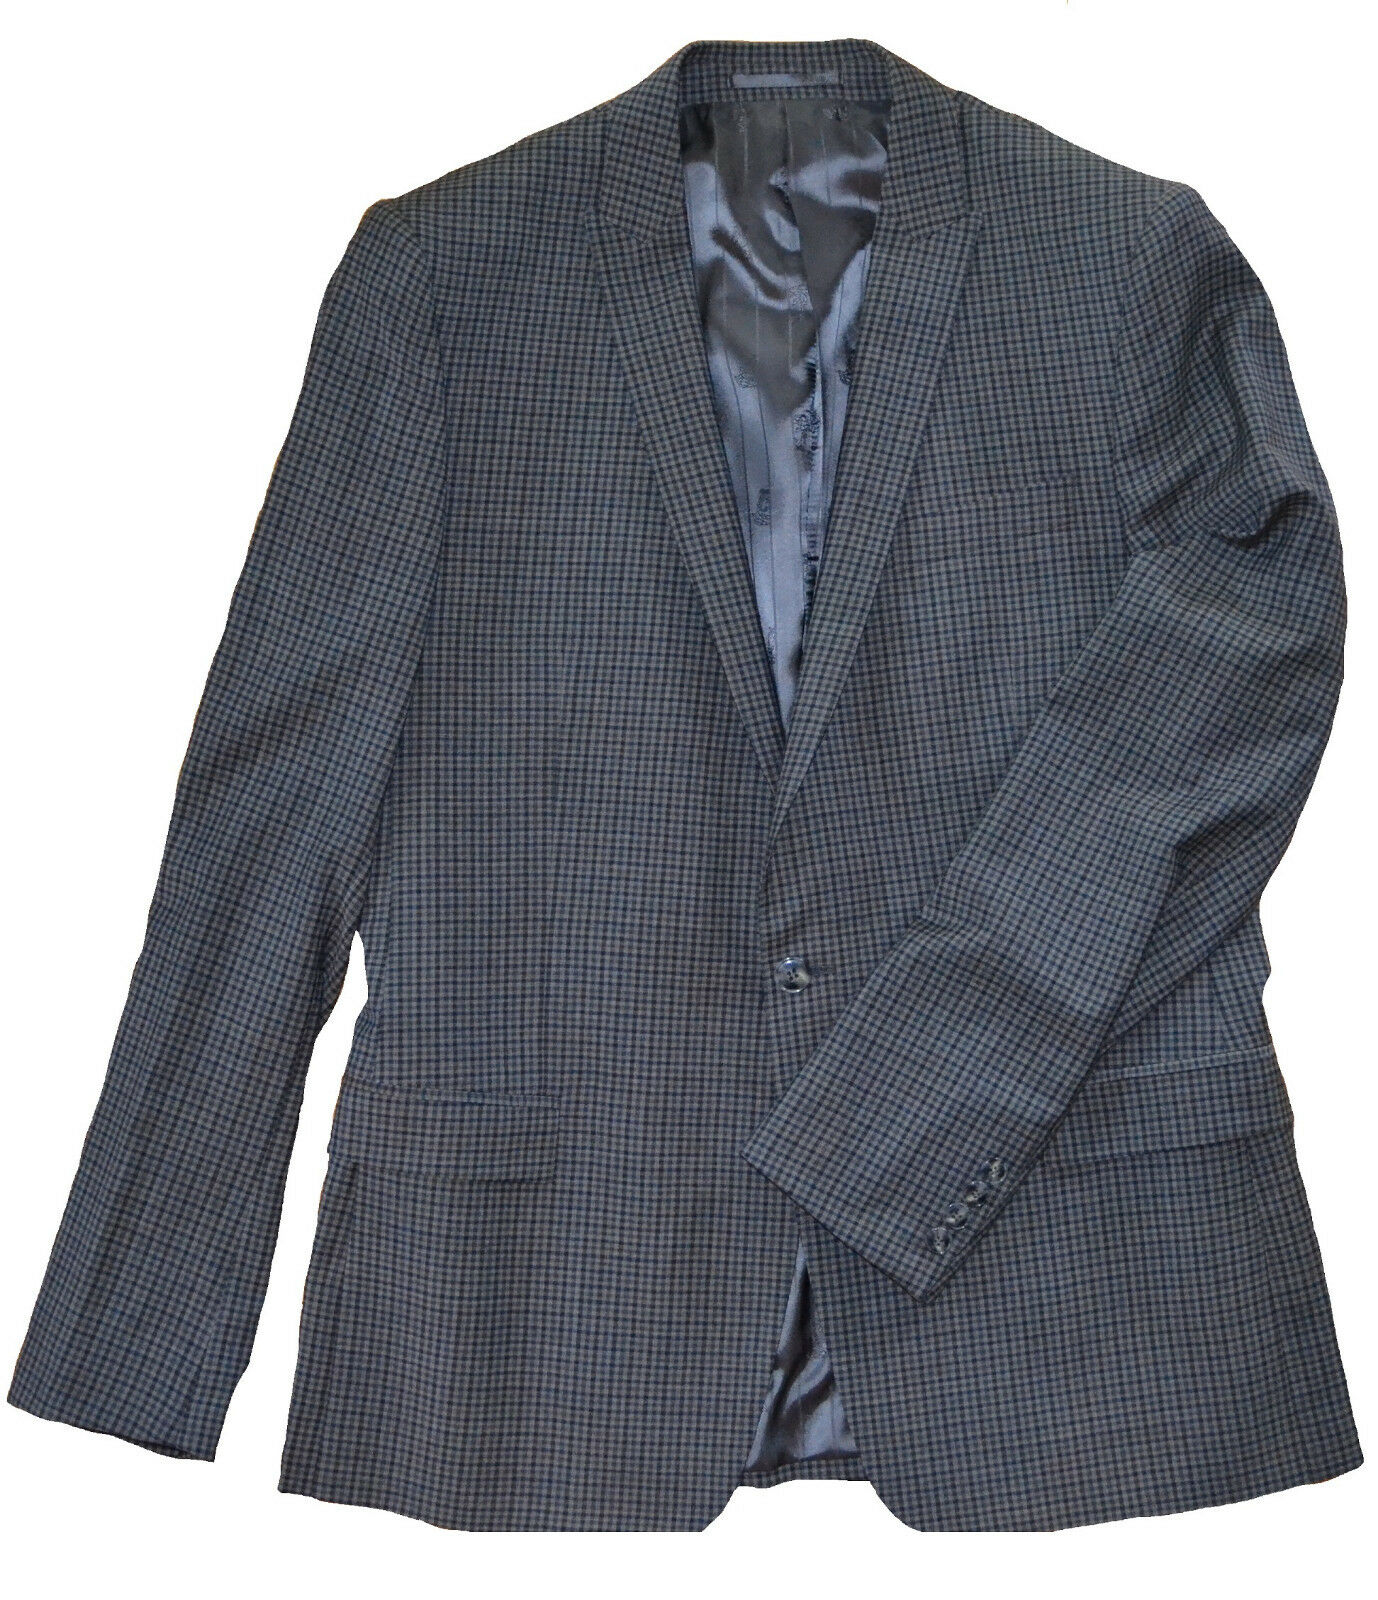 NWT 695 Versace Collection by Gianni Versace Slim Trim Fit Wool Blazer